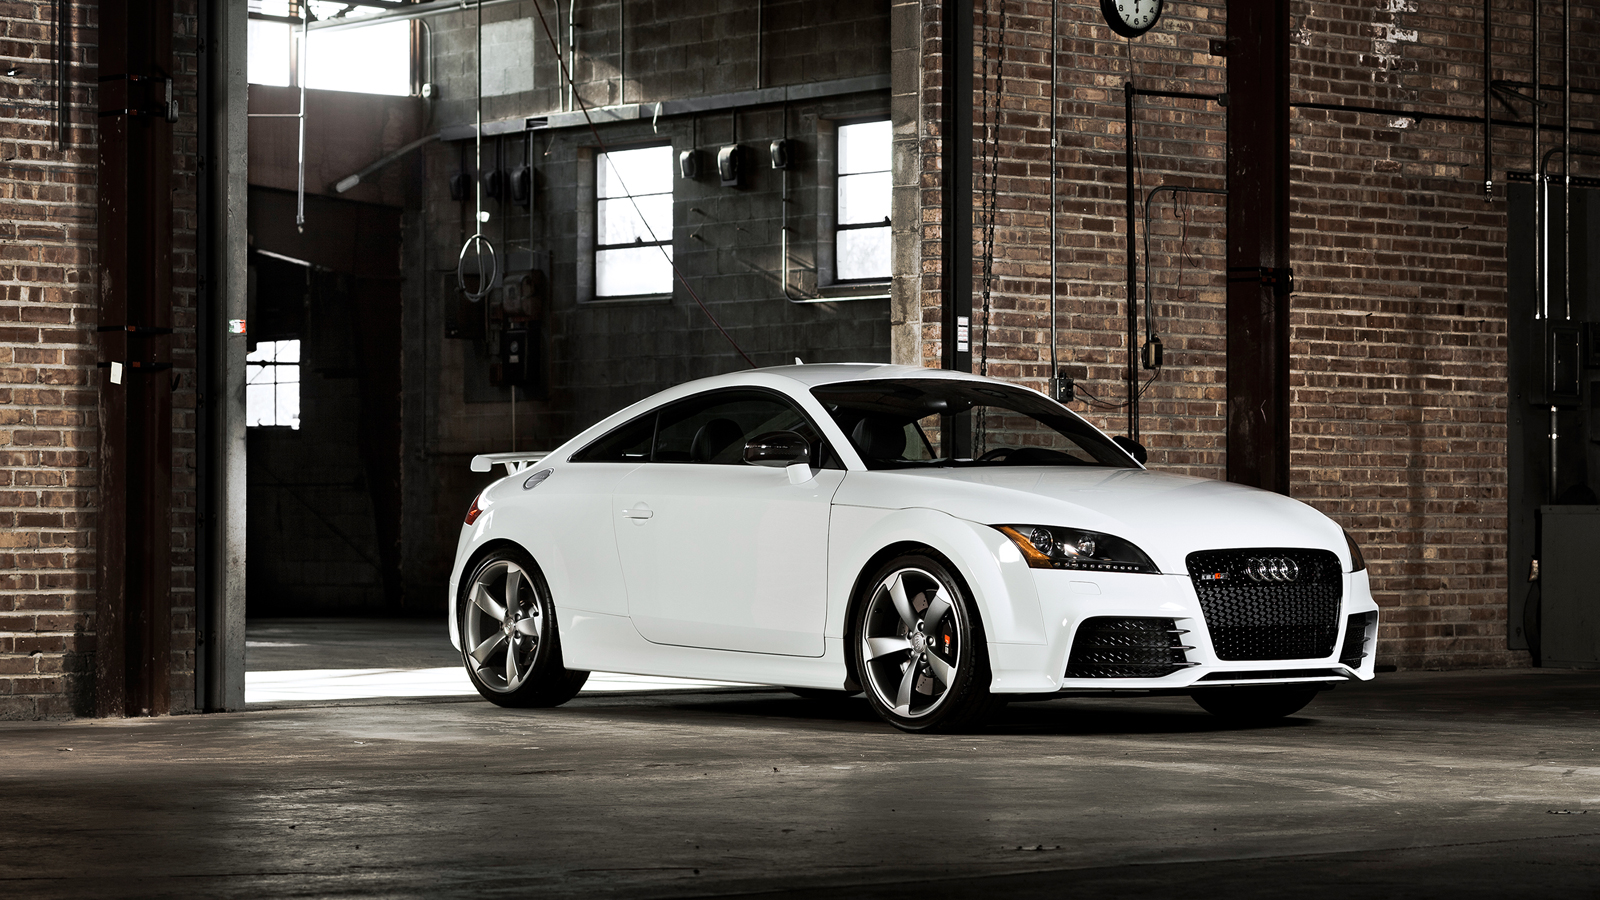 Your ridiculously cool Audi TT-RS wallpaper is here